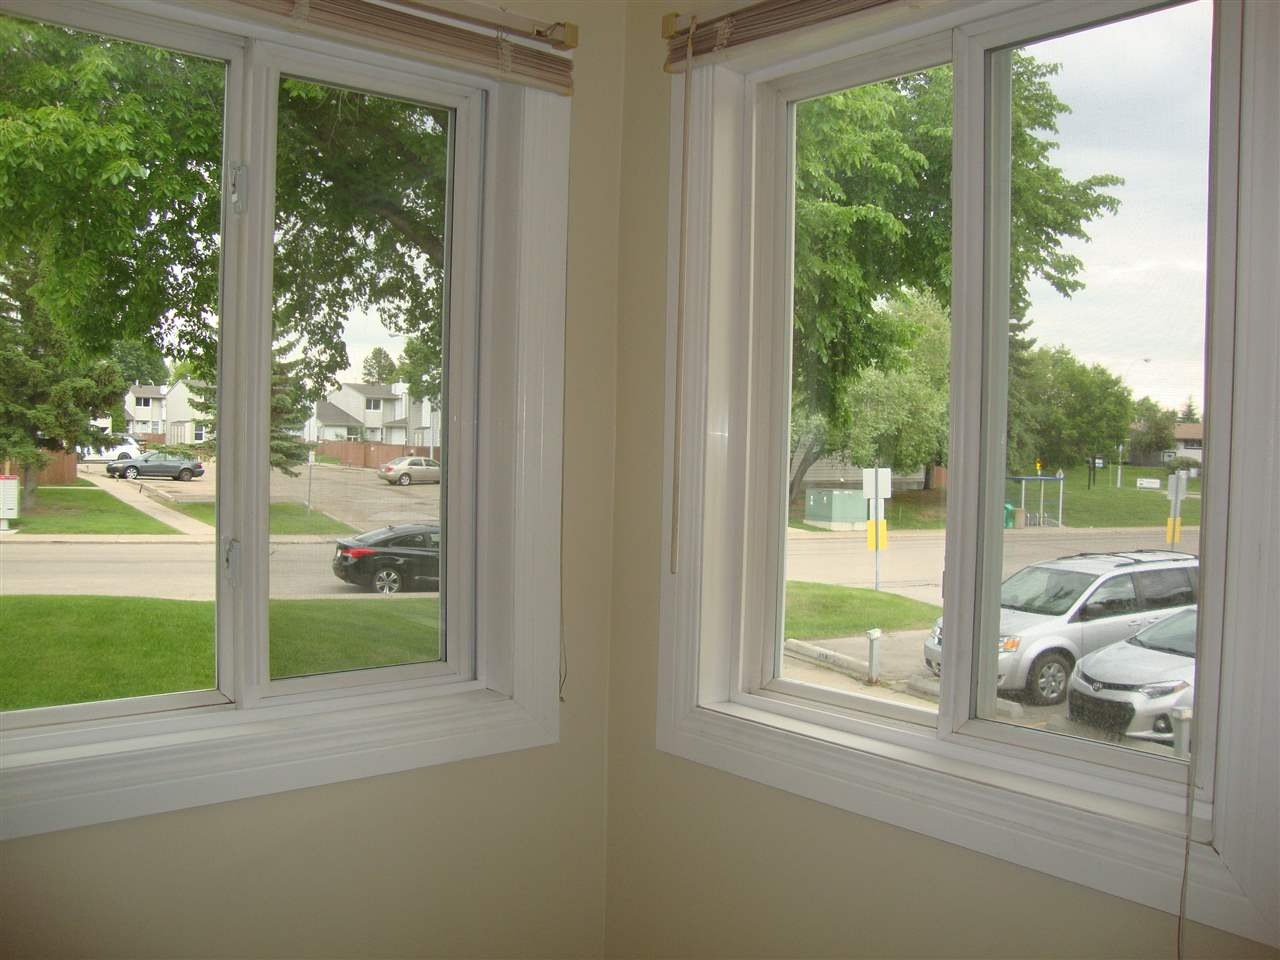 Newer vinyl windows throughout.  These corner windows add lots of natural light to dining room.